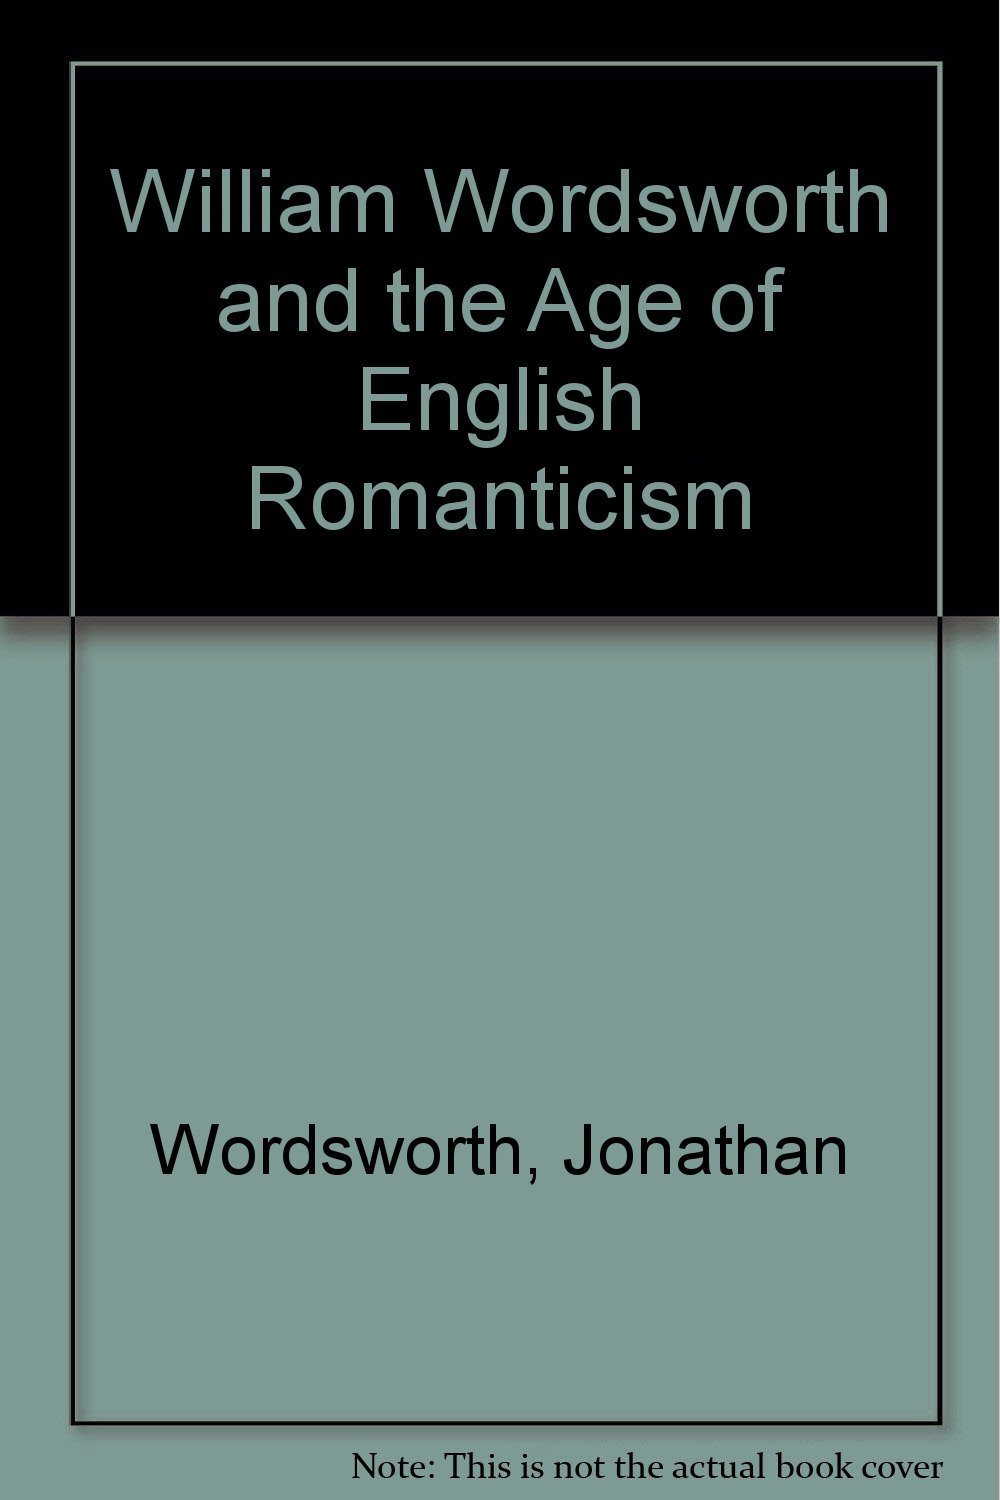 william wordsworth and the age of english r ticism jonathan william wordsworth and the age of english r ticism jonathan wordsworth michael jaye robert woof 9780813512730 com books